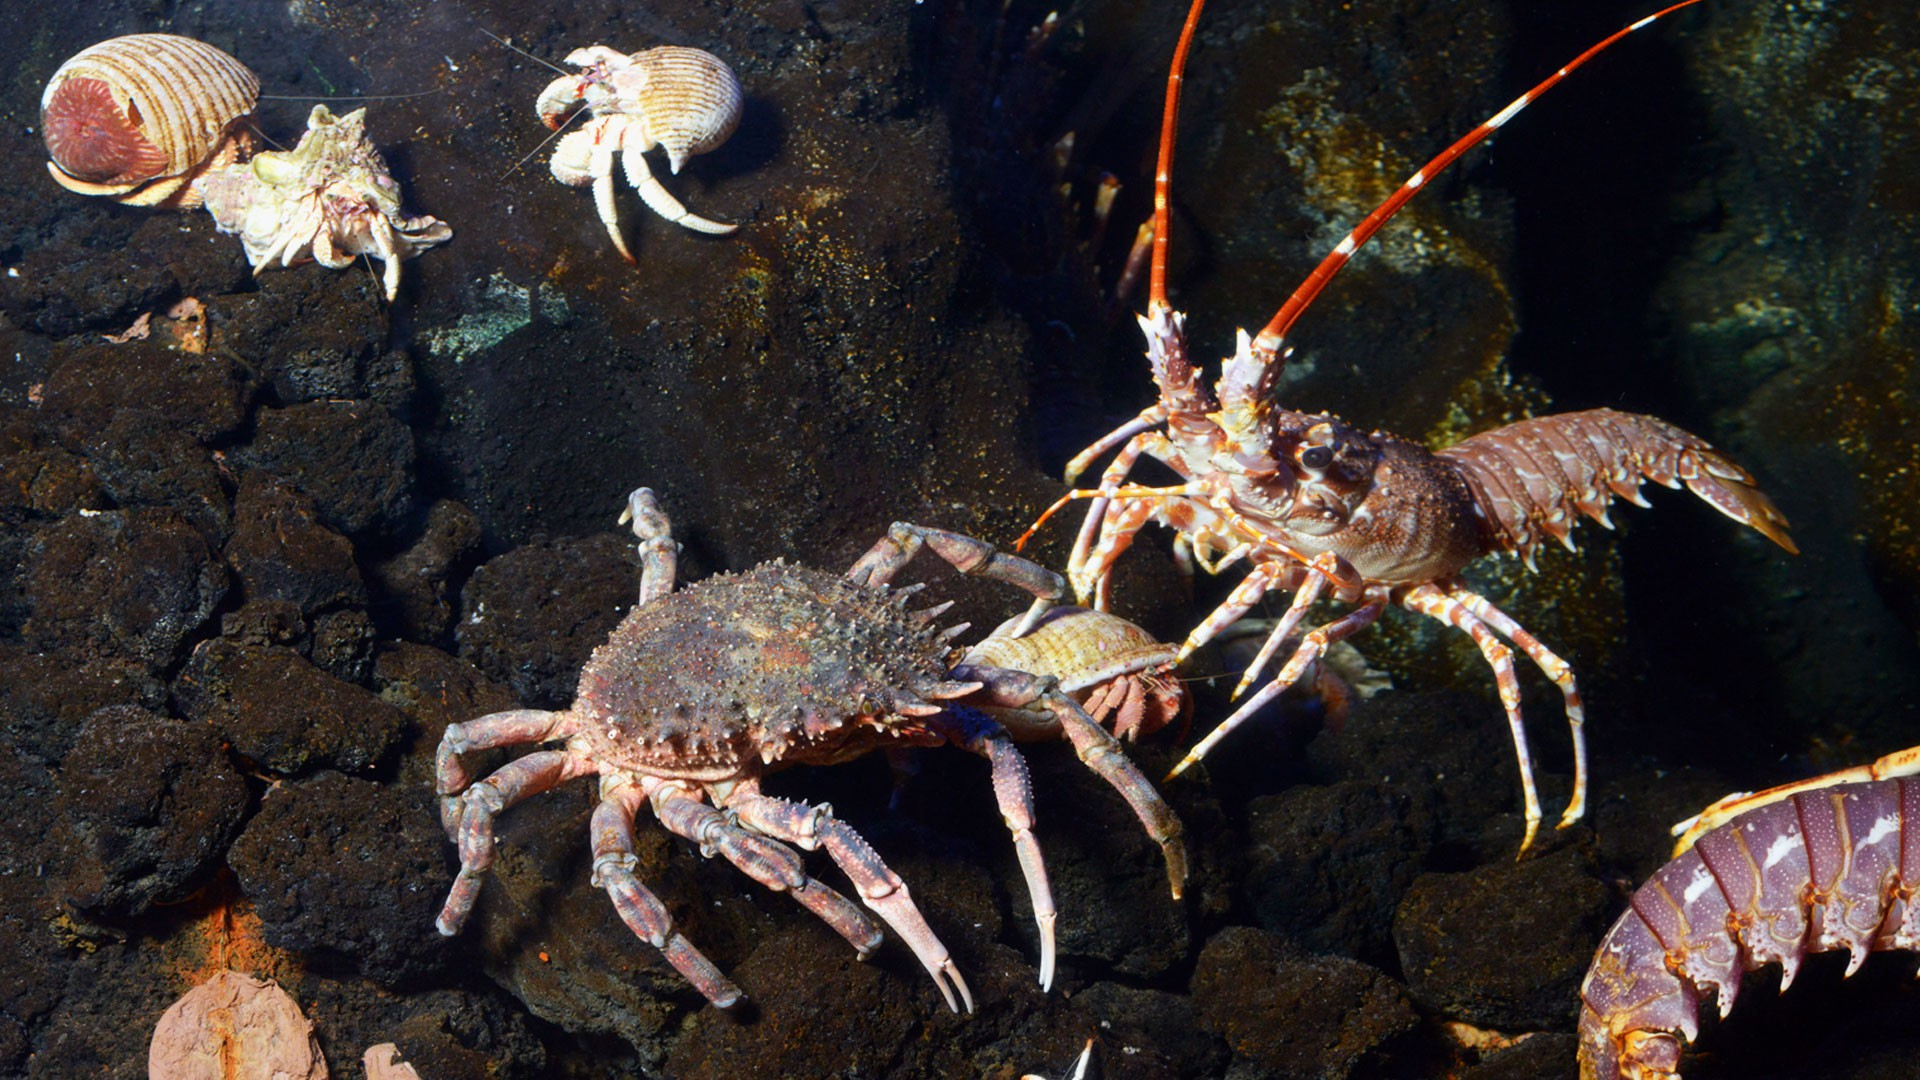 European spider crabs